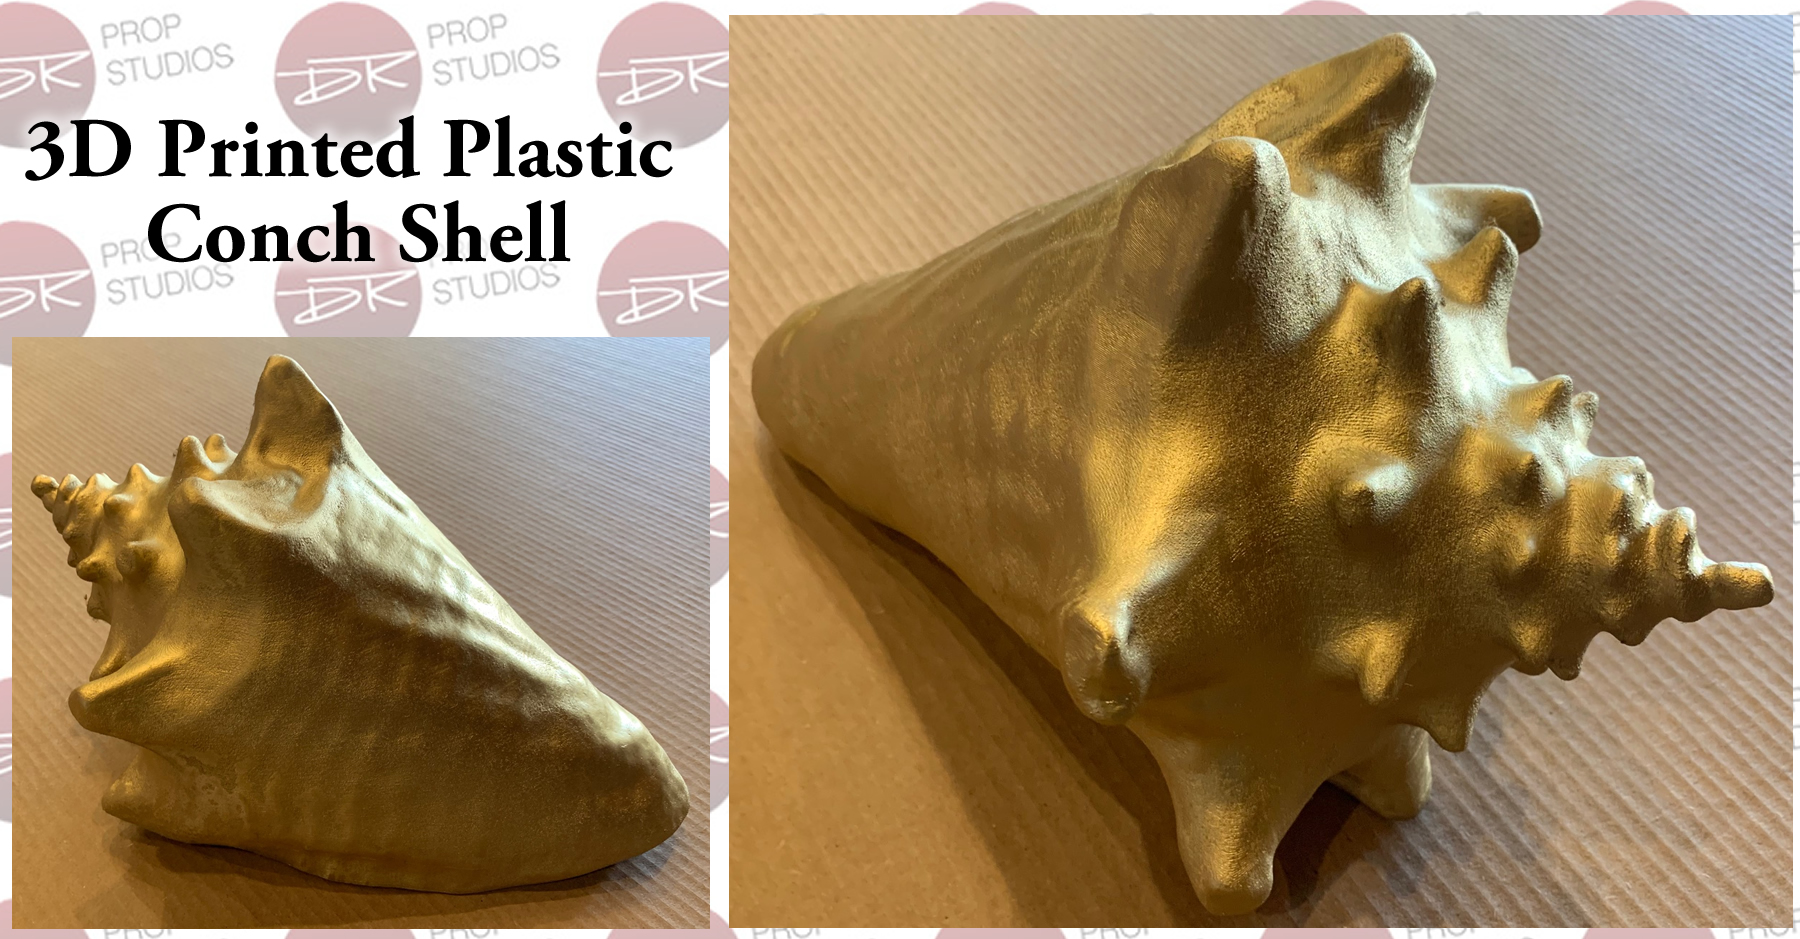 Conch Shell 3D Printed Plastic Prop